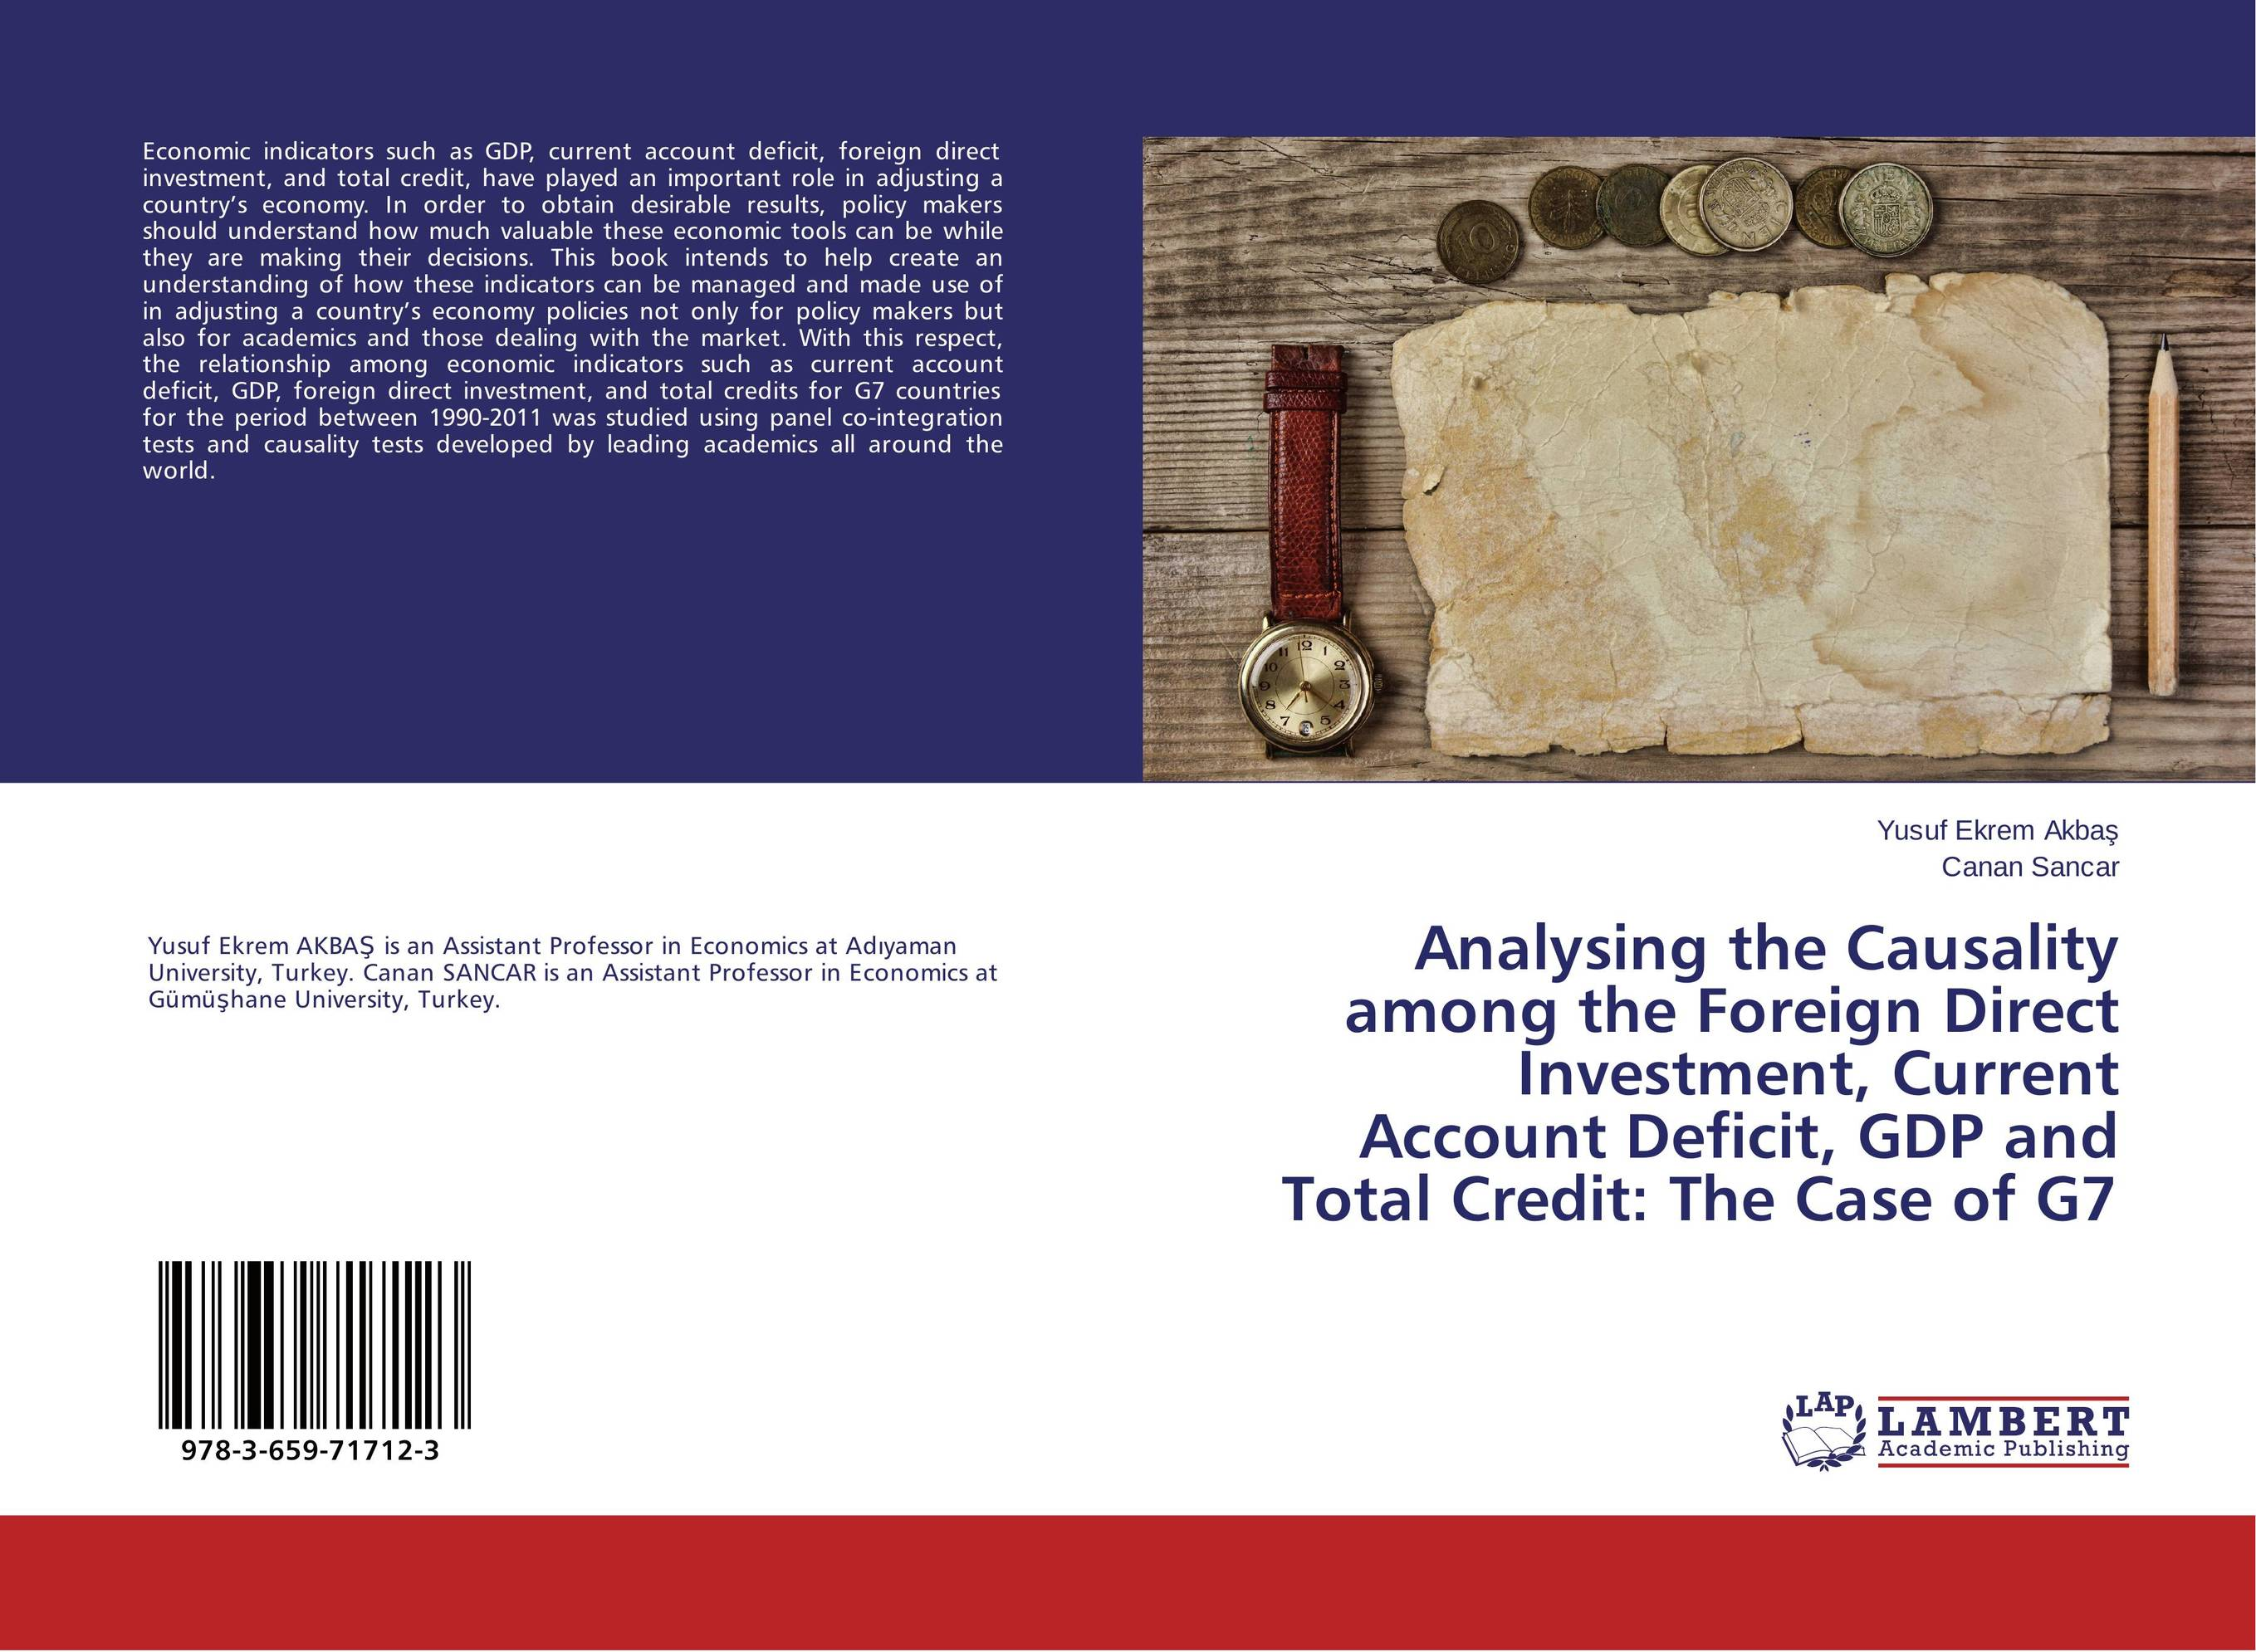 Analysing the Causality among the Foreign Direct Investment, Current Account Deficit, GDP and Total Credit: The Case of G7 michael griffis economic indicators for dummies